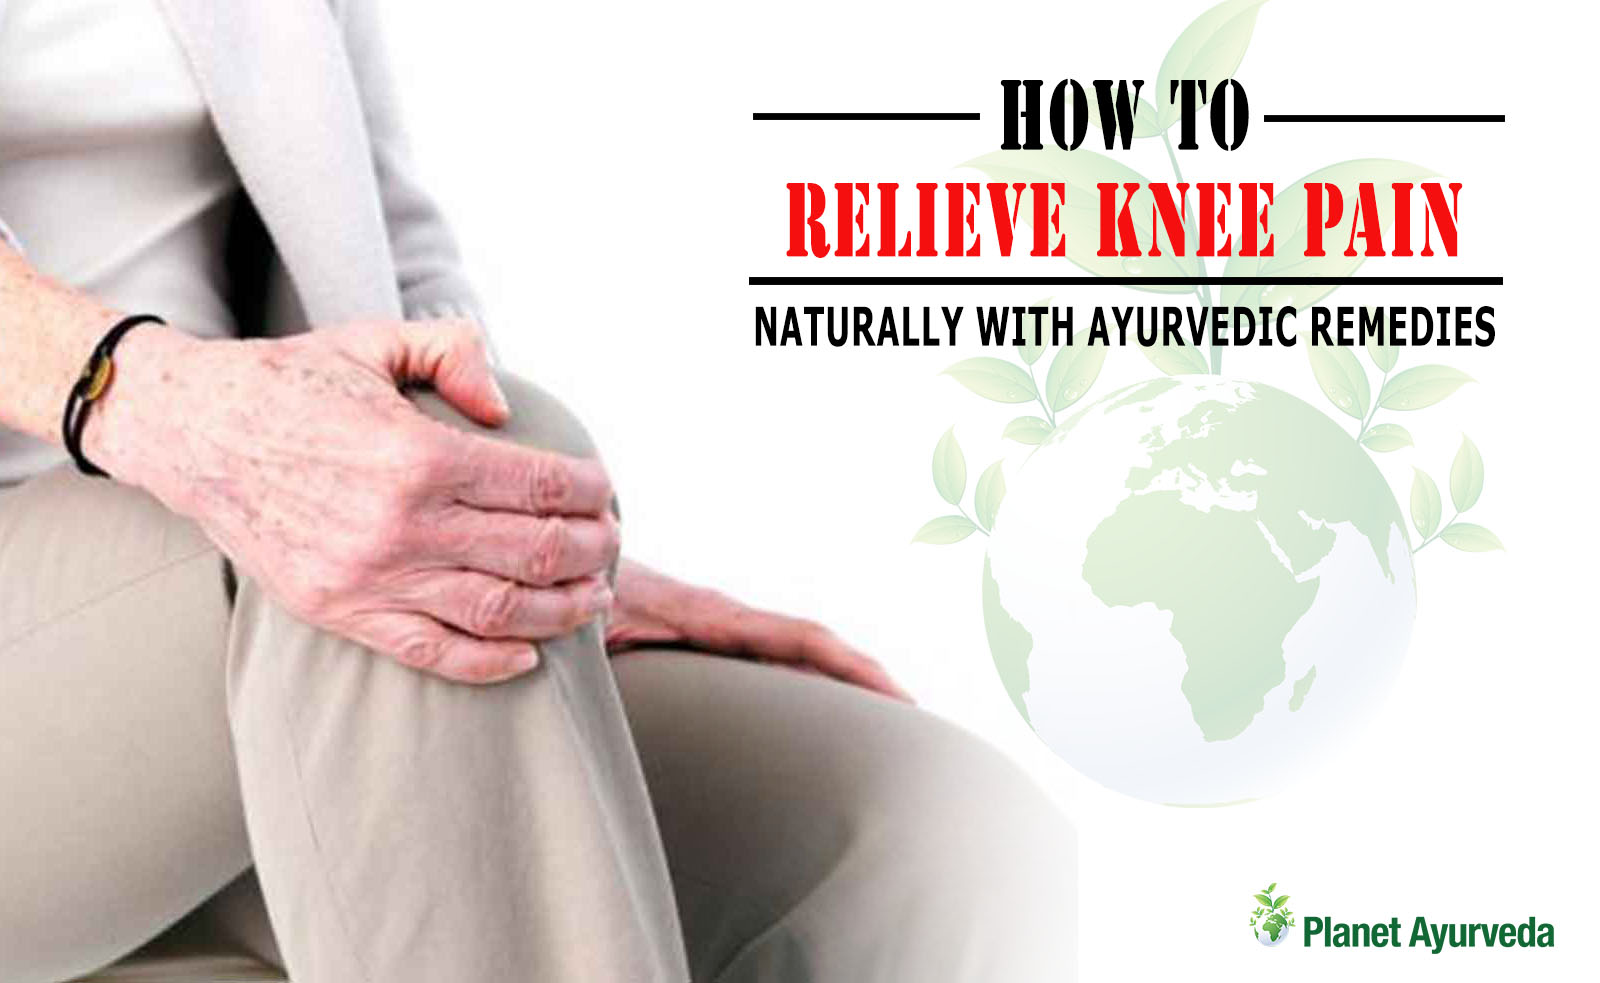 KNEE PAIN NATURALLY